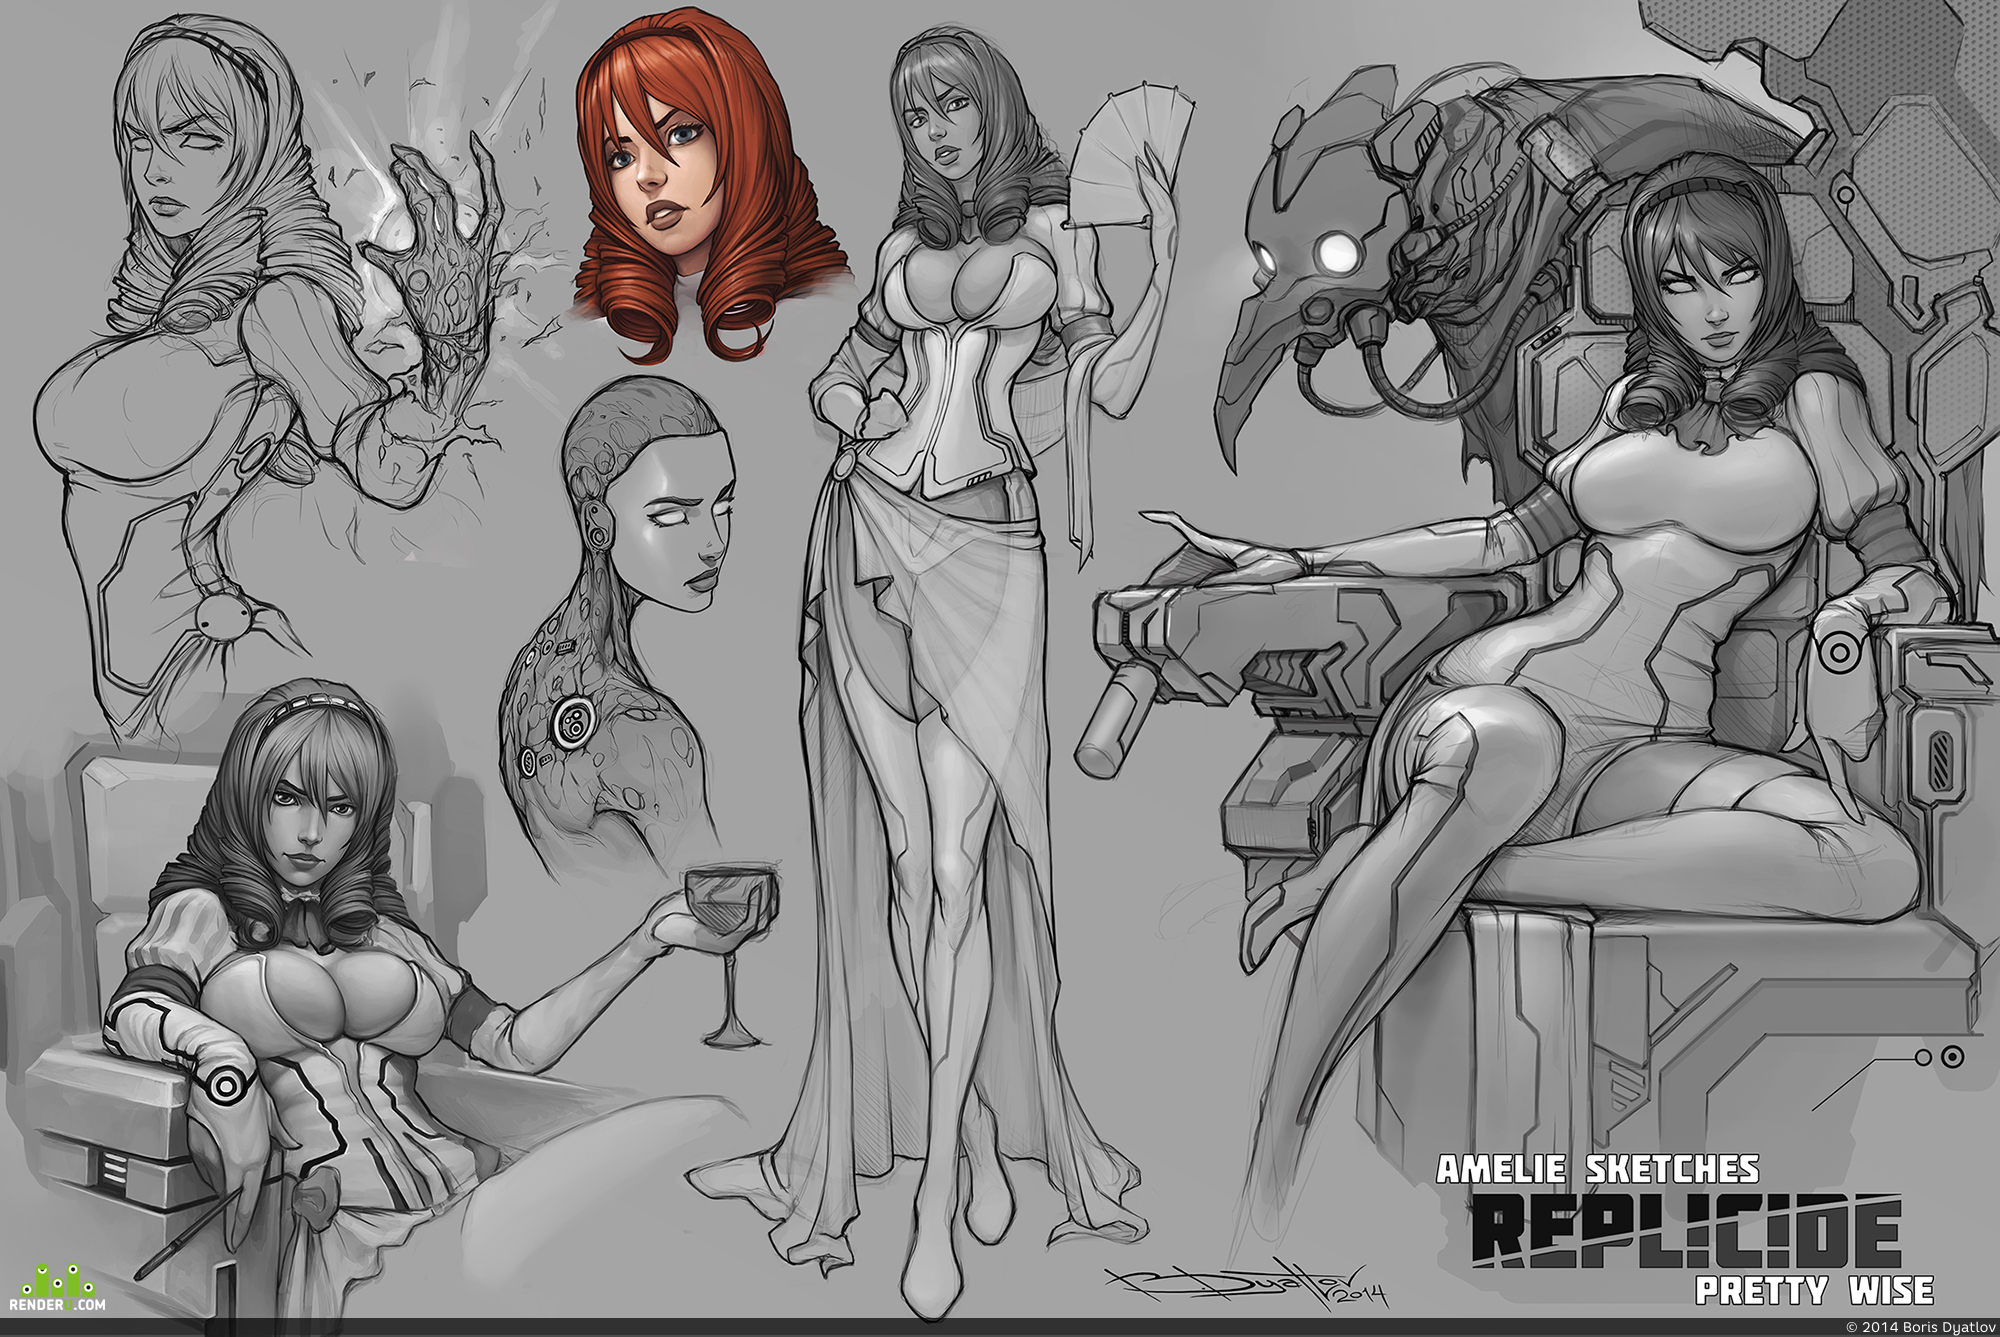 preview Amelie sketches REPLICIDE